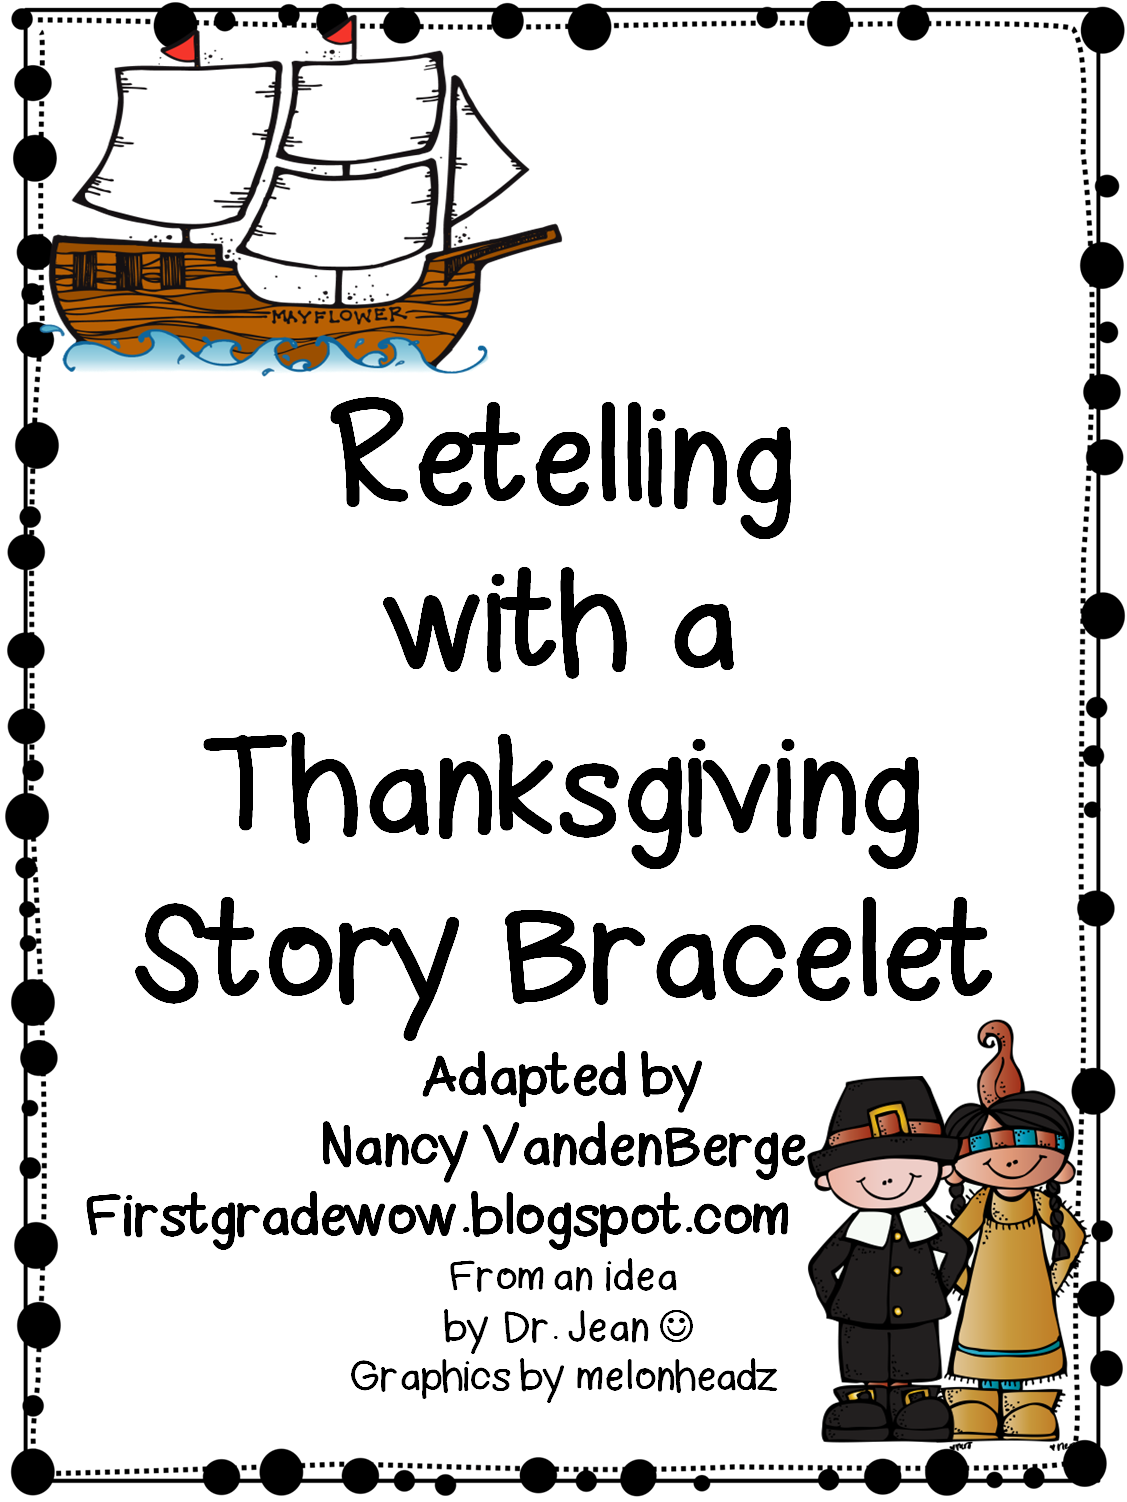 First grade wow november. Clipart thanksgiving story